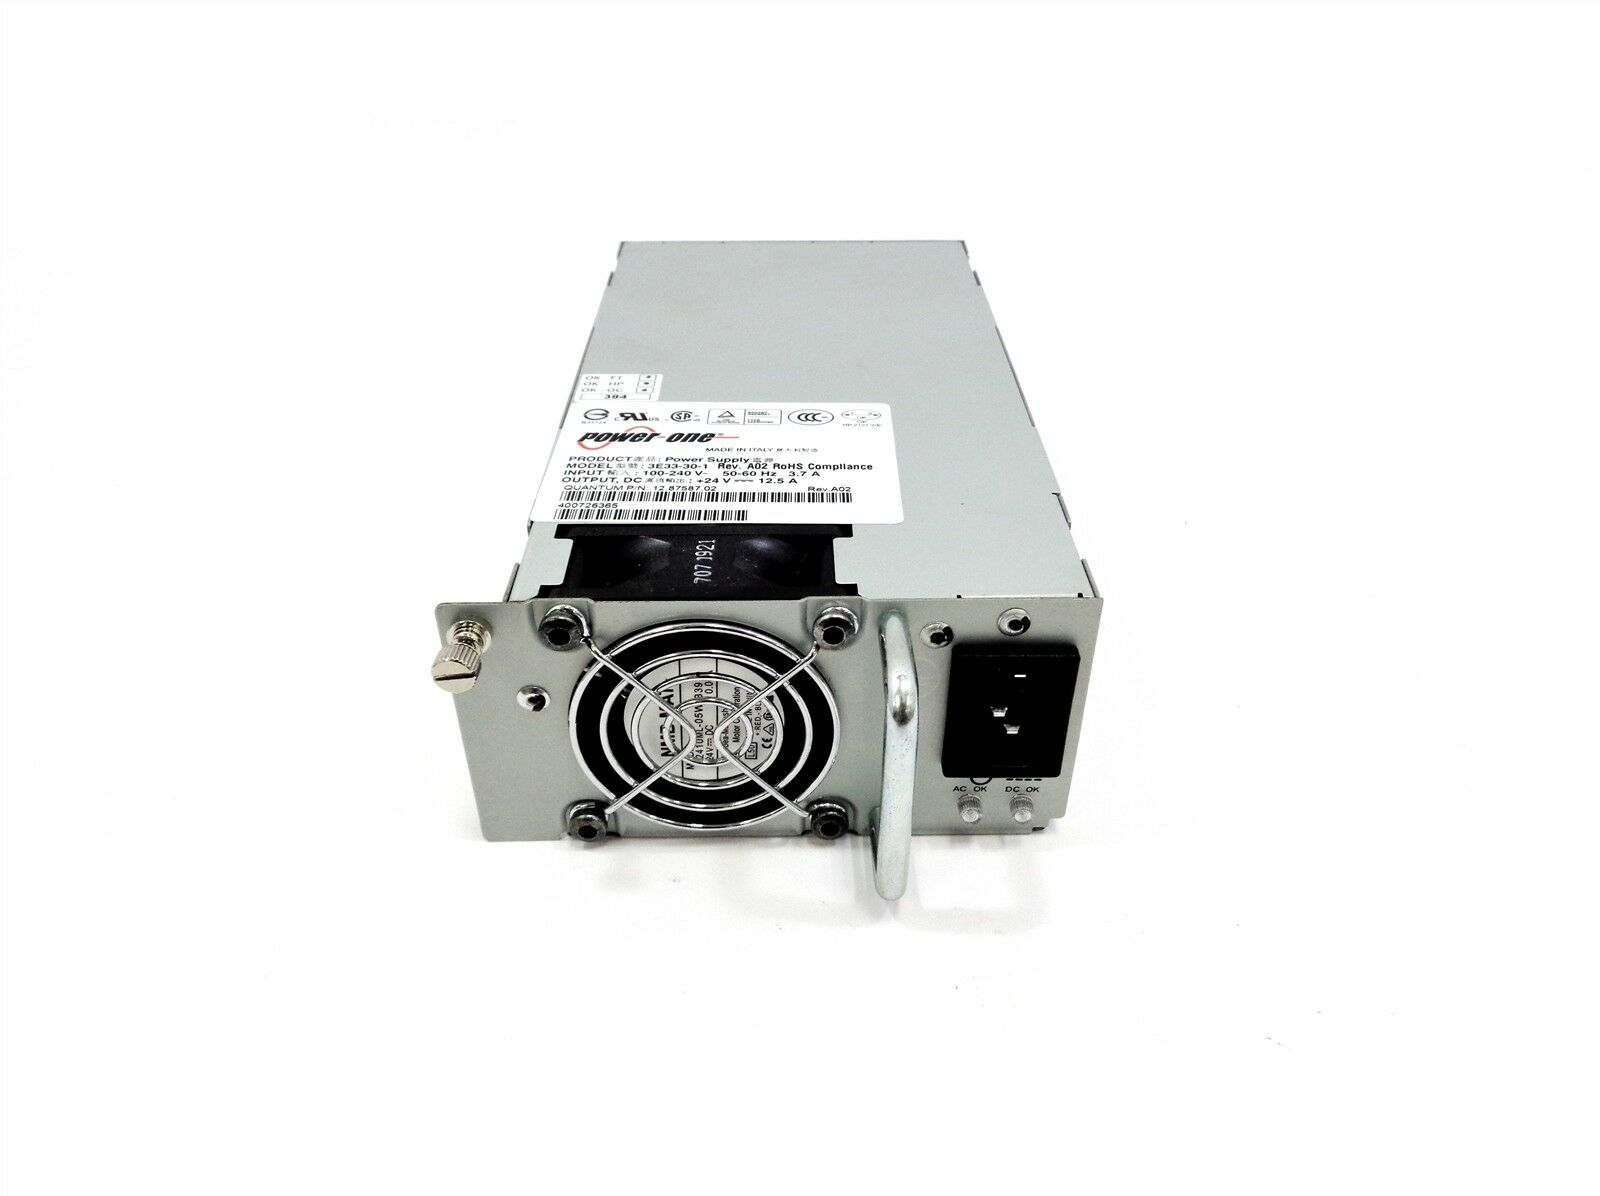 Quantum 12.87587.02 Px502 Px506 Px510 Library Power-one Power Supply